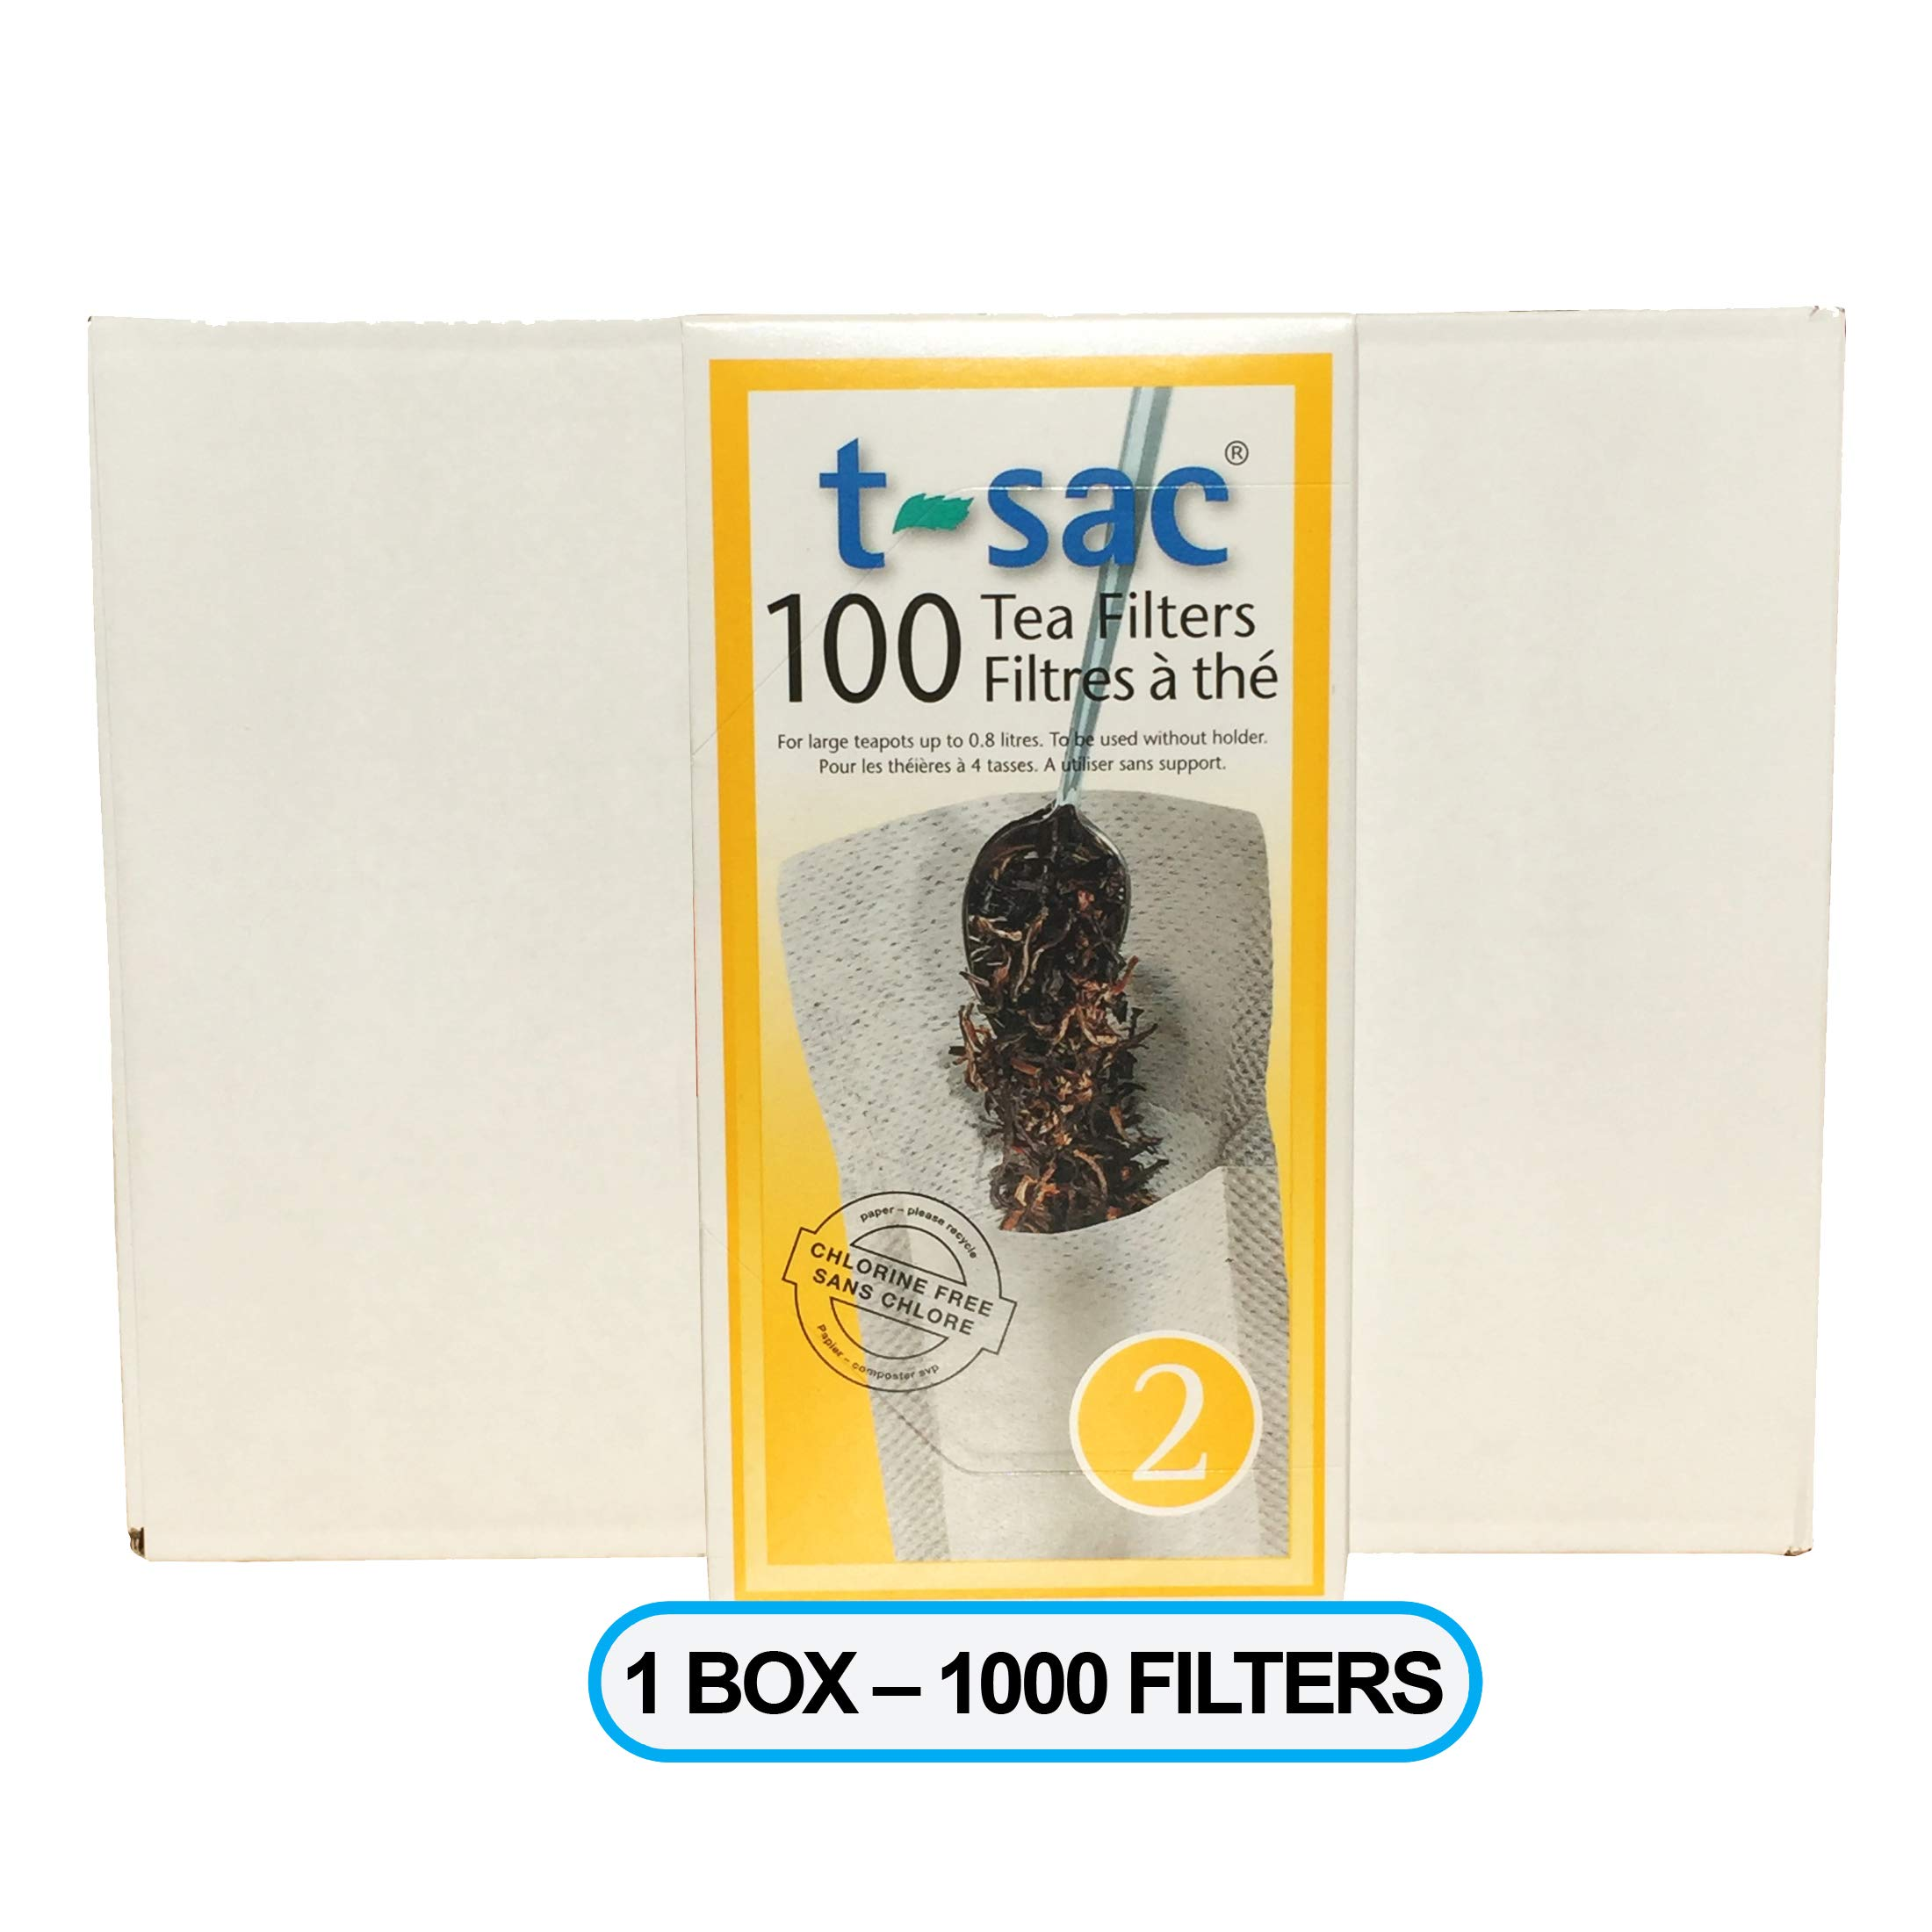 Modern Tea Filter Bags, Disposable Tea Infuser, Size 2, Box of 1000 Filters - Heat Sealable, Natural, Easy to Use Anywhere, No Cleanup - Perfect for Teas, Coffee & Herbs - from Magic Teafit